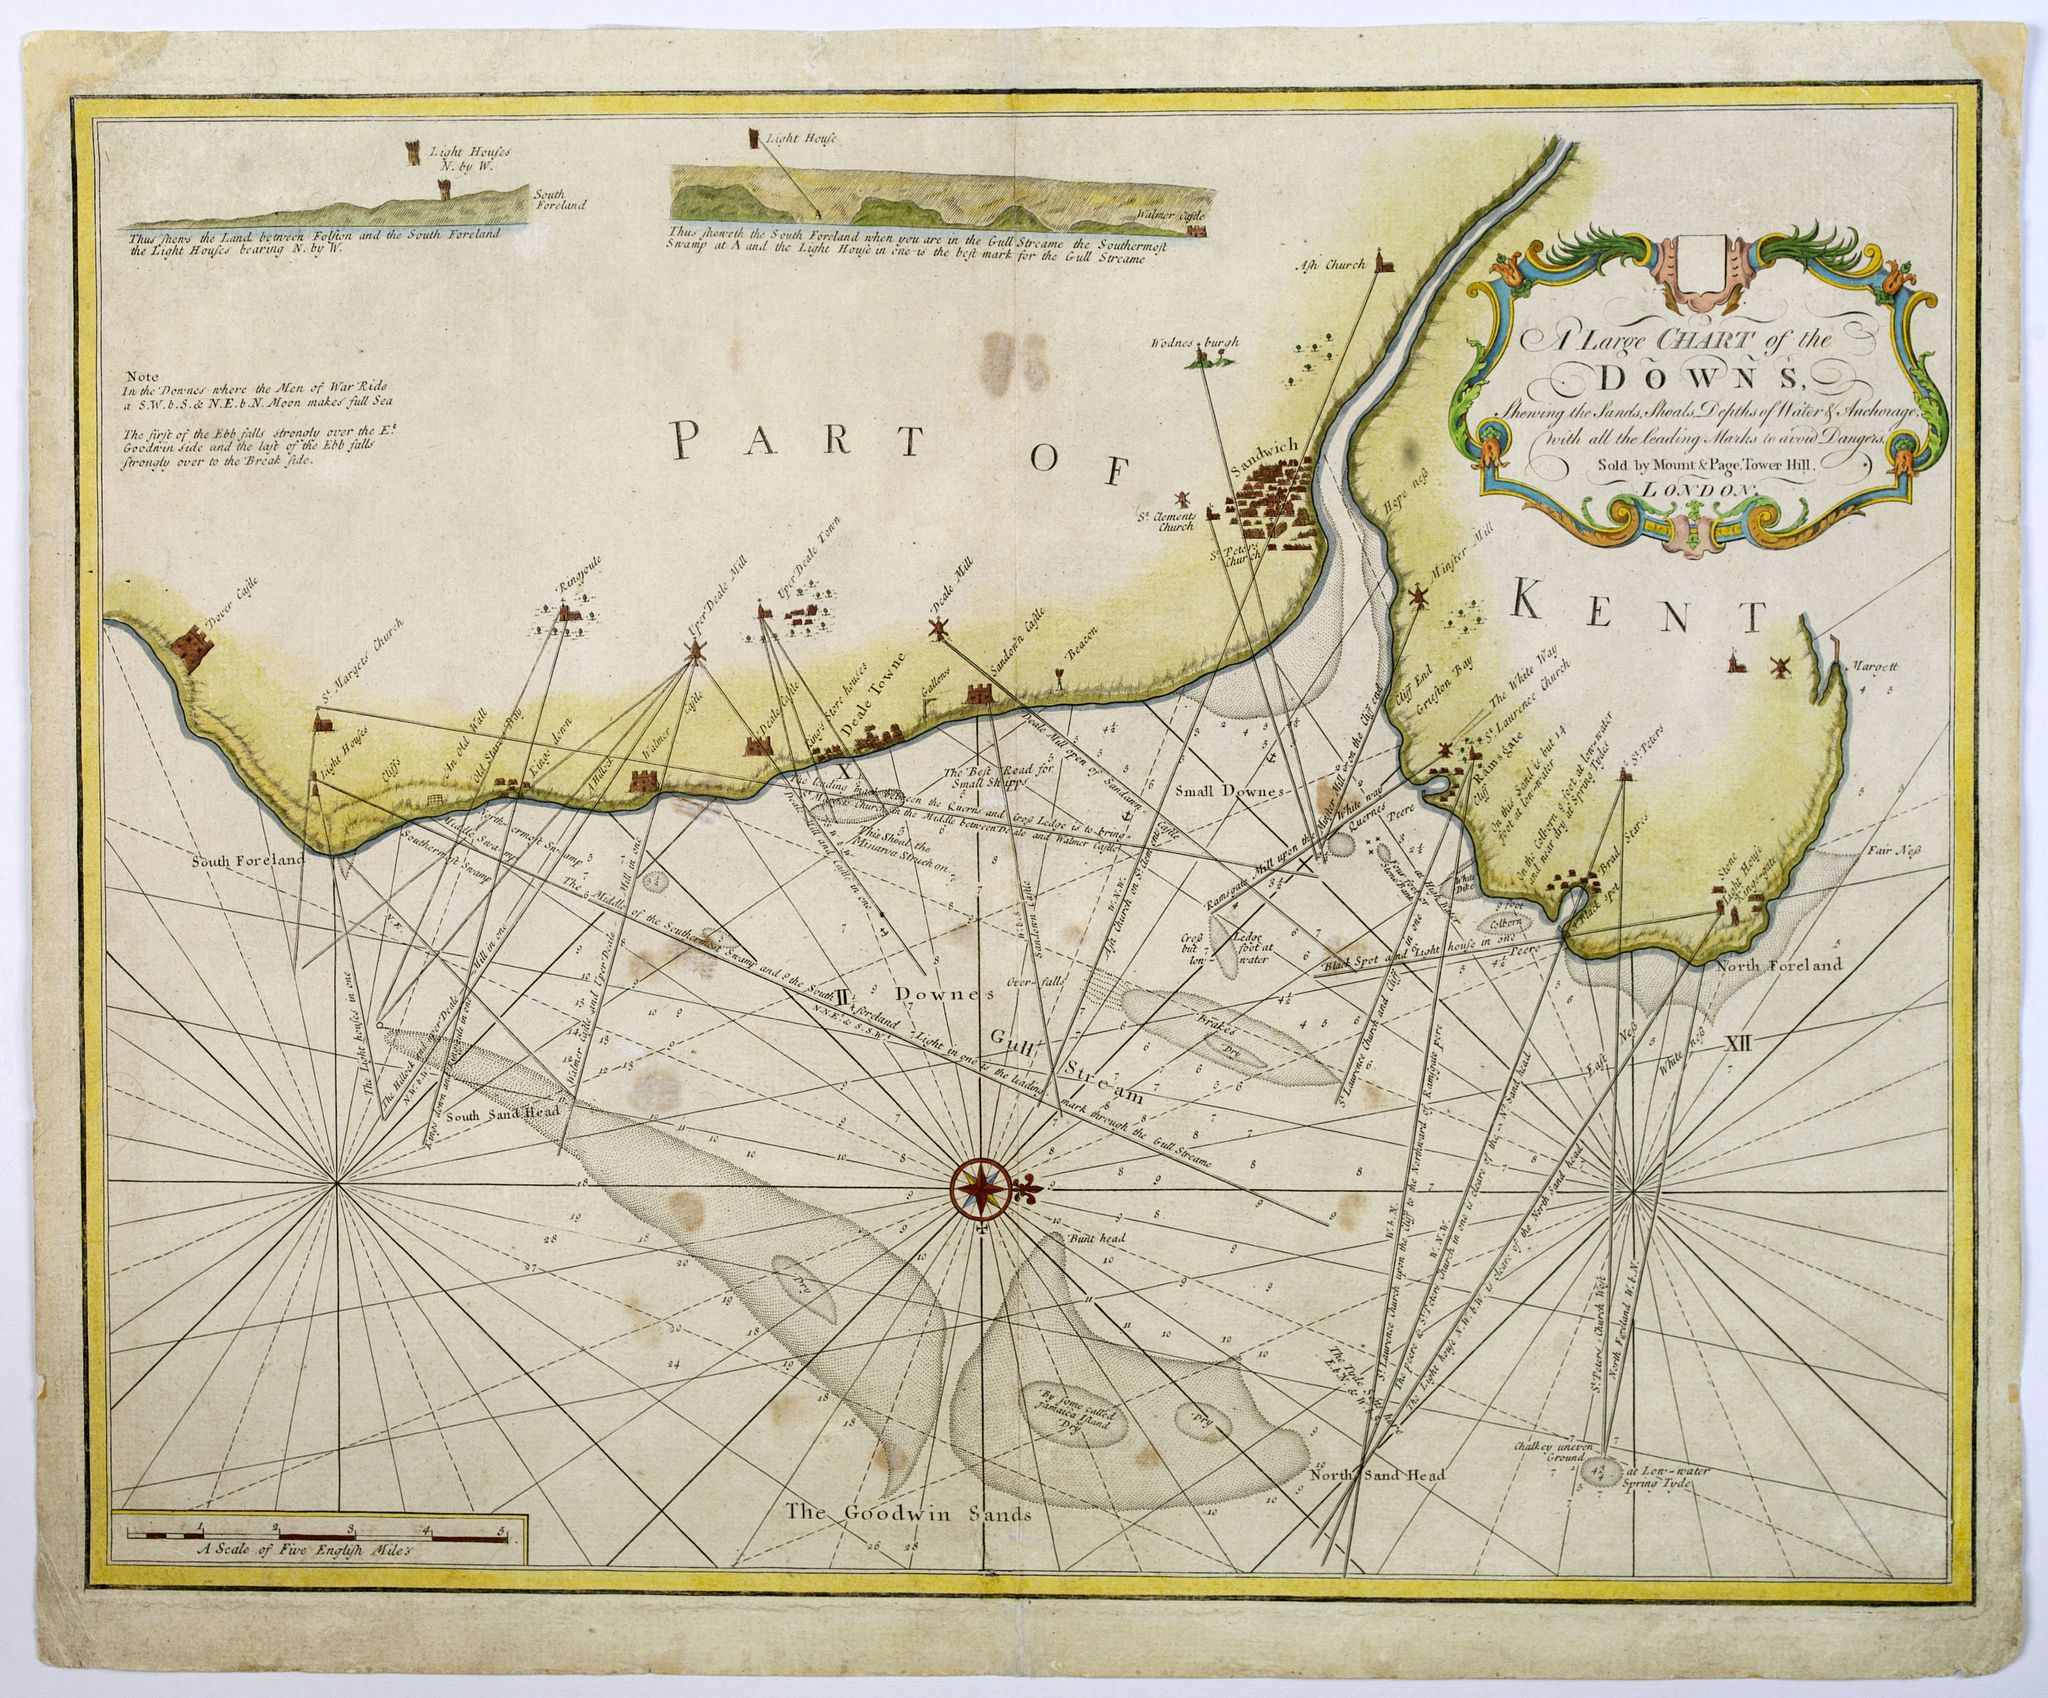 MOUNT & PAGE., A Large Chart of the Downs, Shewing the Sands, Shoals, Depths of Water. . ., antique map, old maps